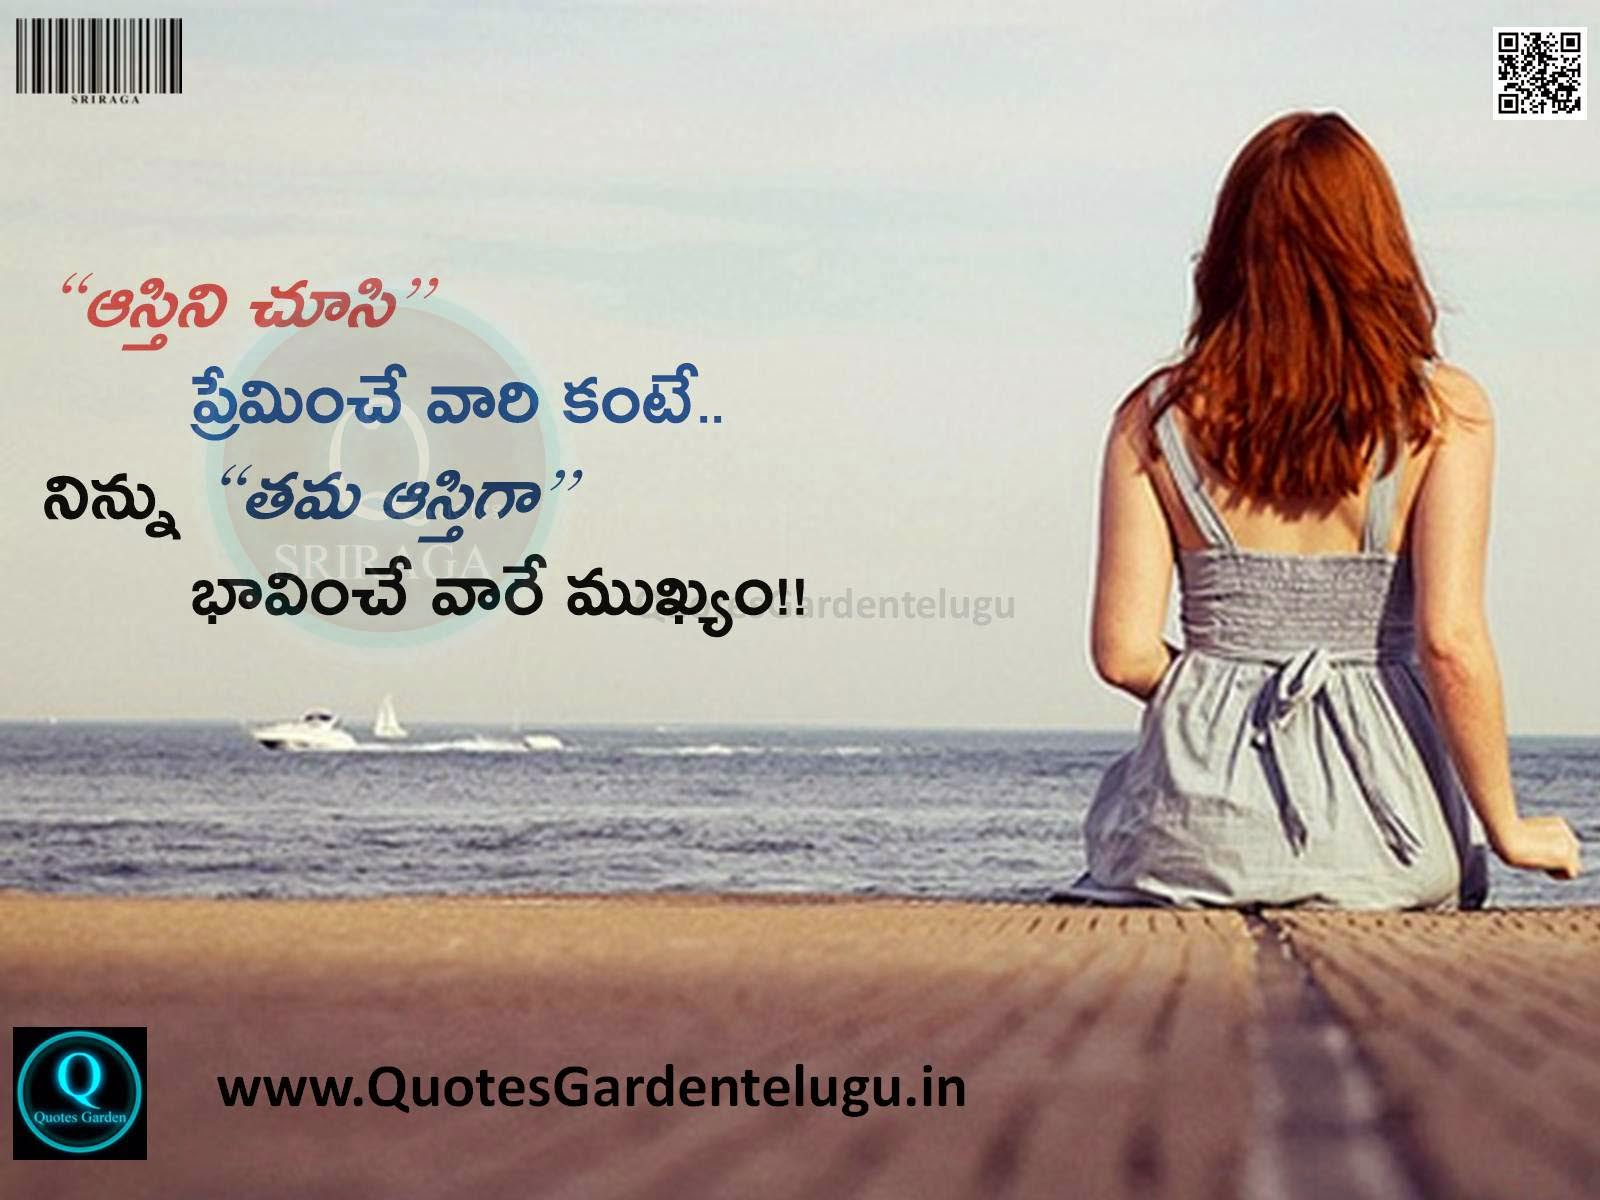 Quotes Friendship Gorgeous Ravikumar Ravikumar9063870 On Pinterest